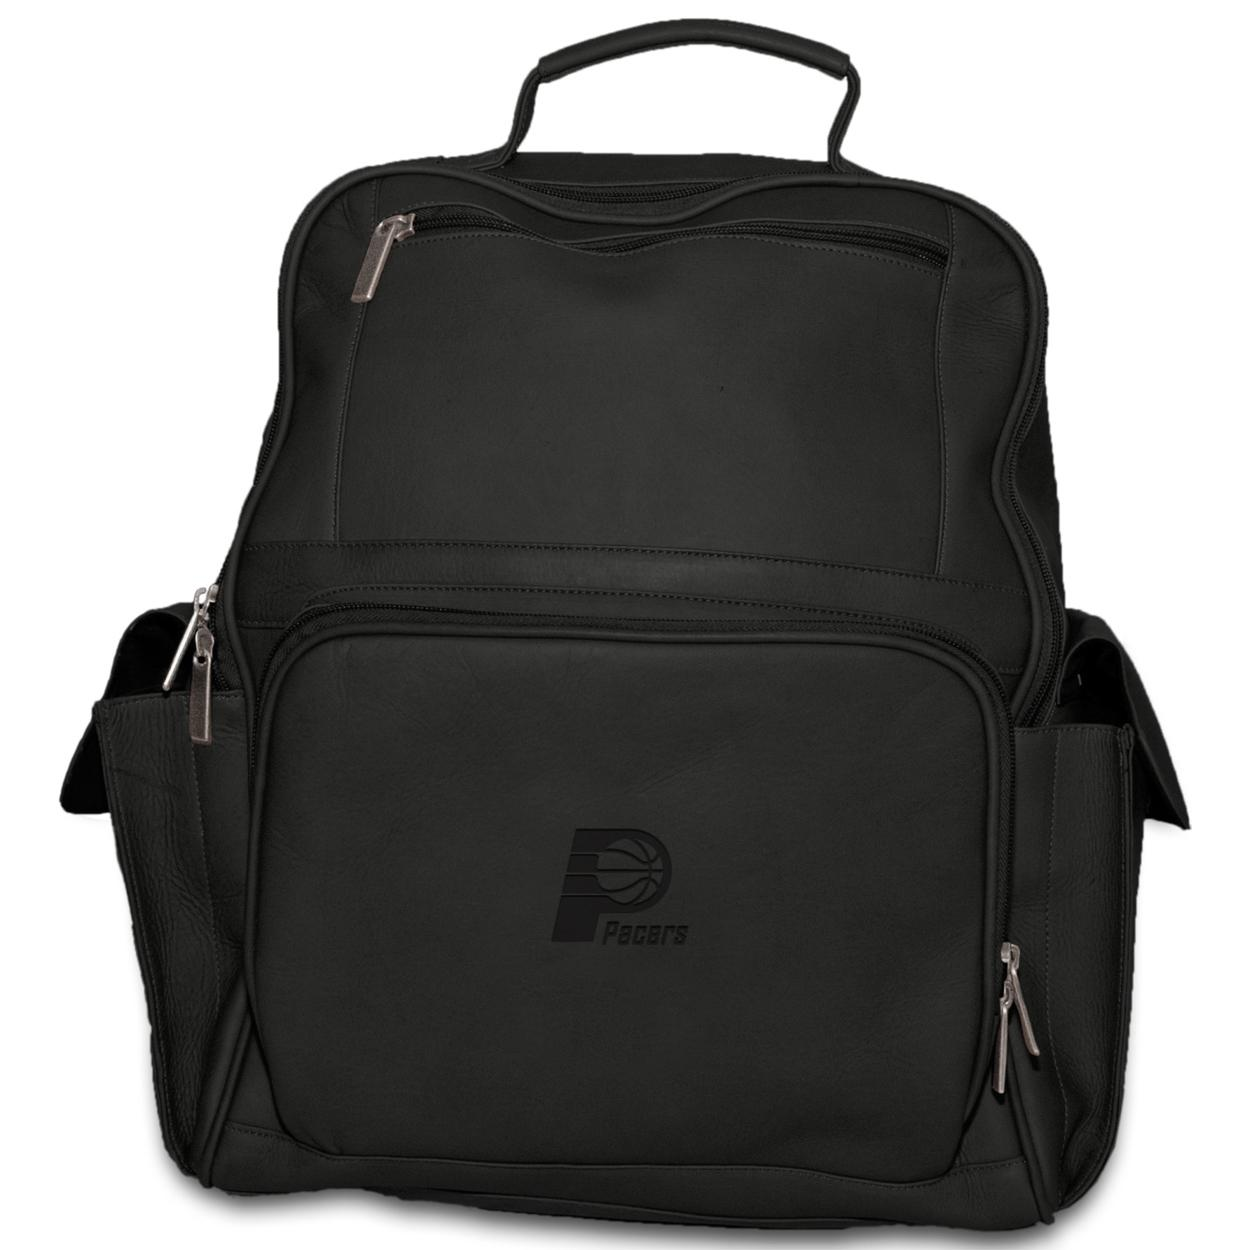 Pangea Black Leather Large Computer Backpack - Indianapolis Pacers Indiana Pacers PANGBKTINDBKB